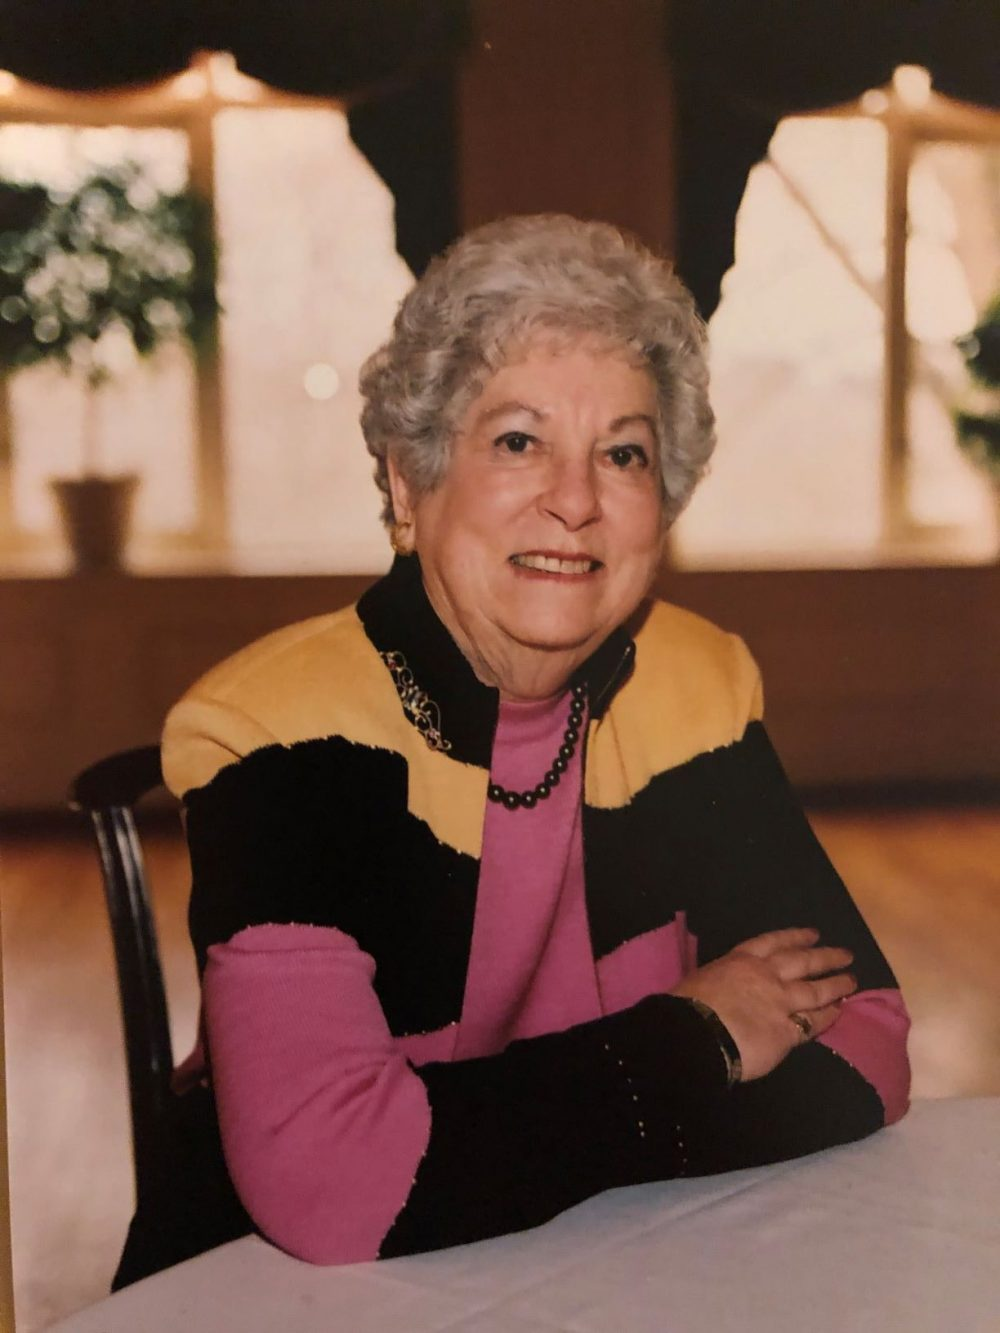 Betty F. Younger, 95